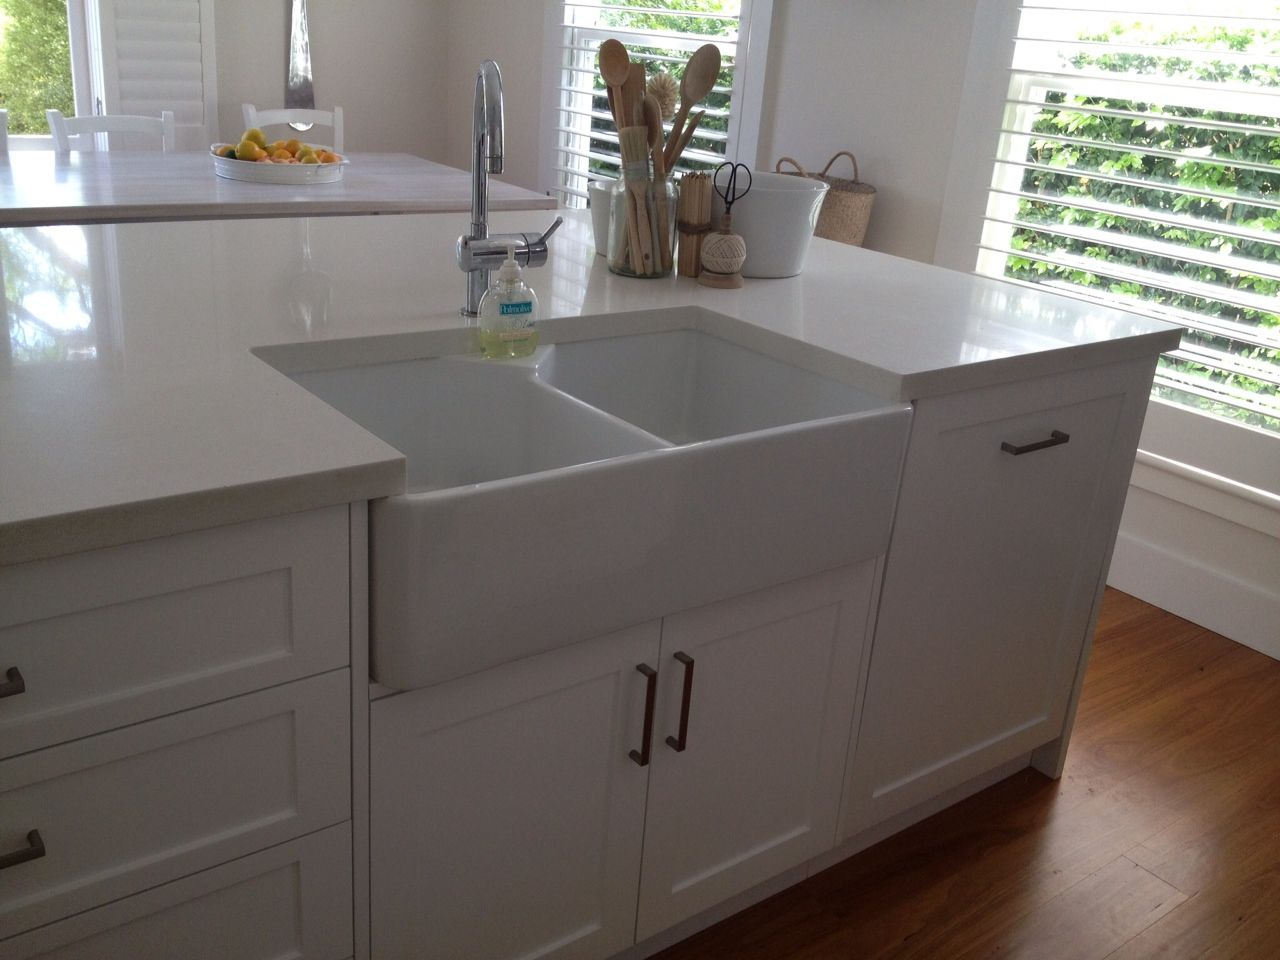 Pictures of kitchen islands with sinks - This Kitchen Island Has A Butler Sink Shaker Polyurethane Doors And On Kitchen Island Sinks With